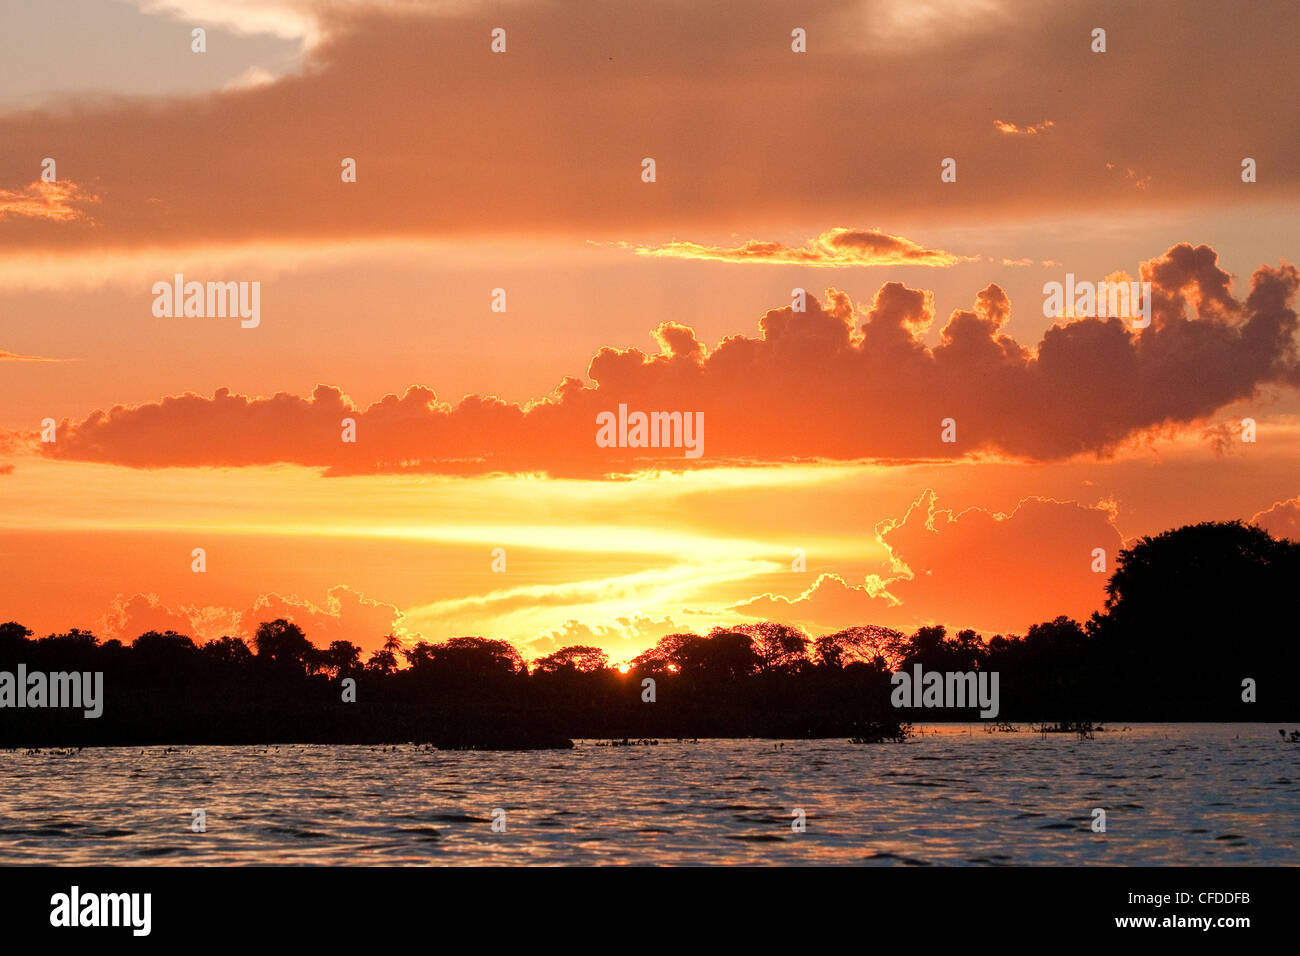 Sunset, Pantanal wetlands, Southwestern Brazil, South America - Stock Image